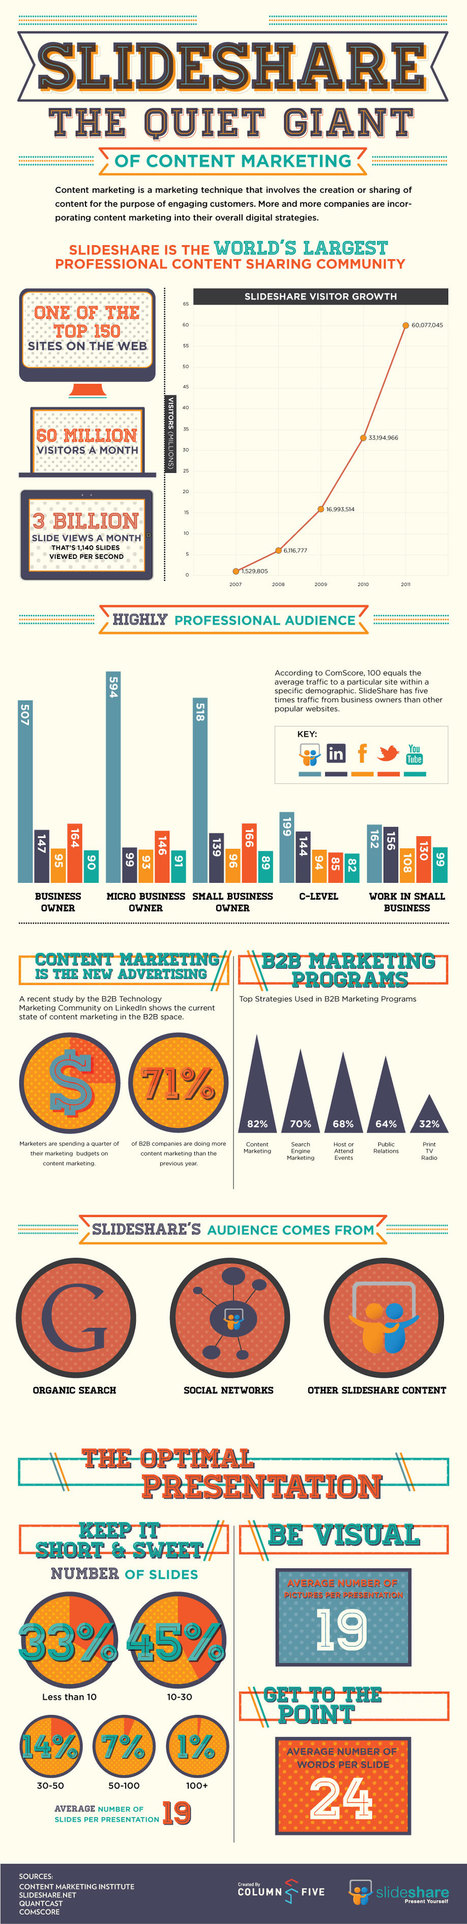 Slideshare Infographic: The Quiet Giant of Content Marketing | Social Media Learning Lab | Scoop.it